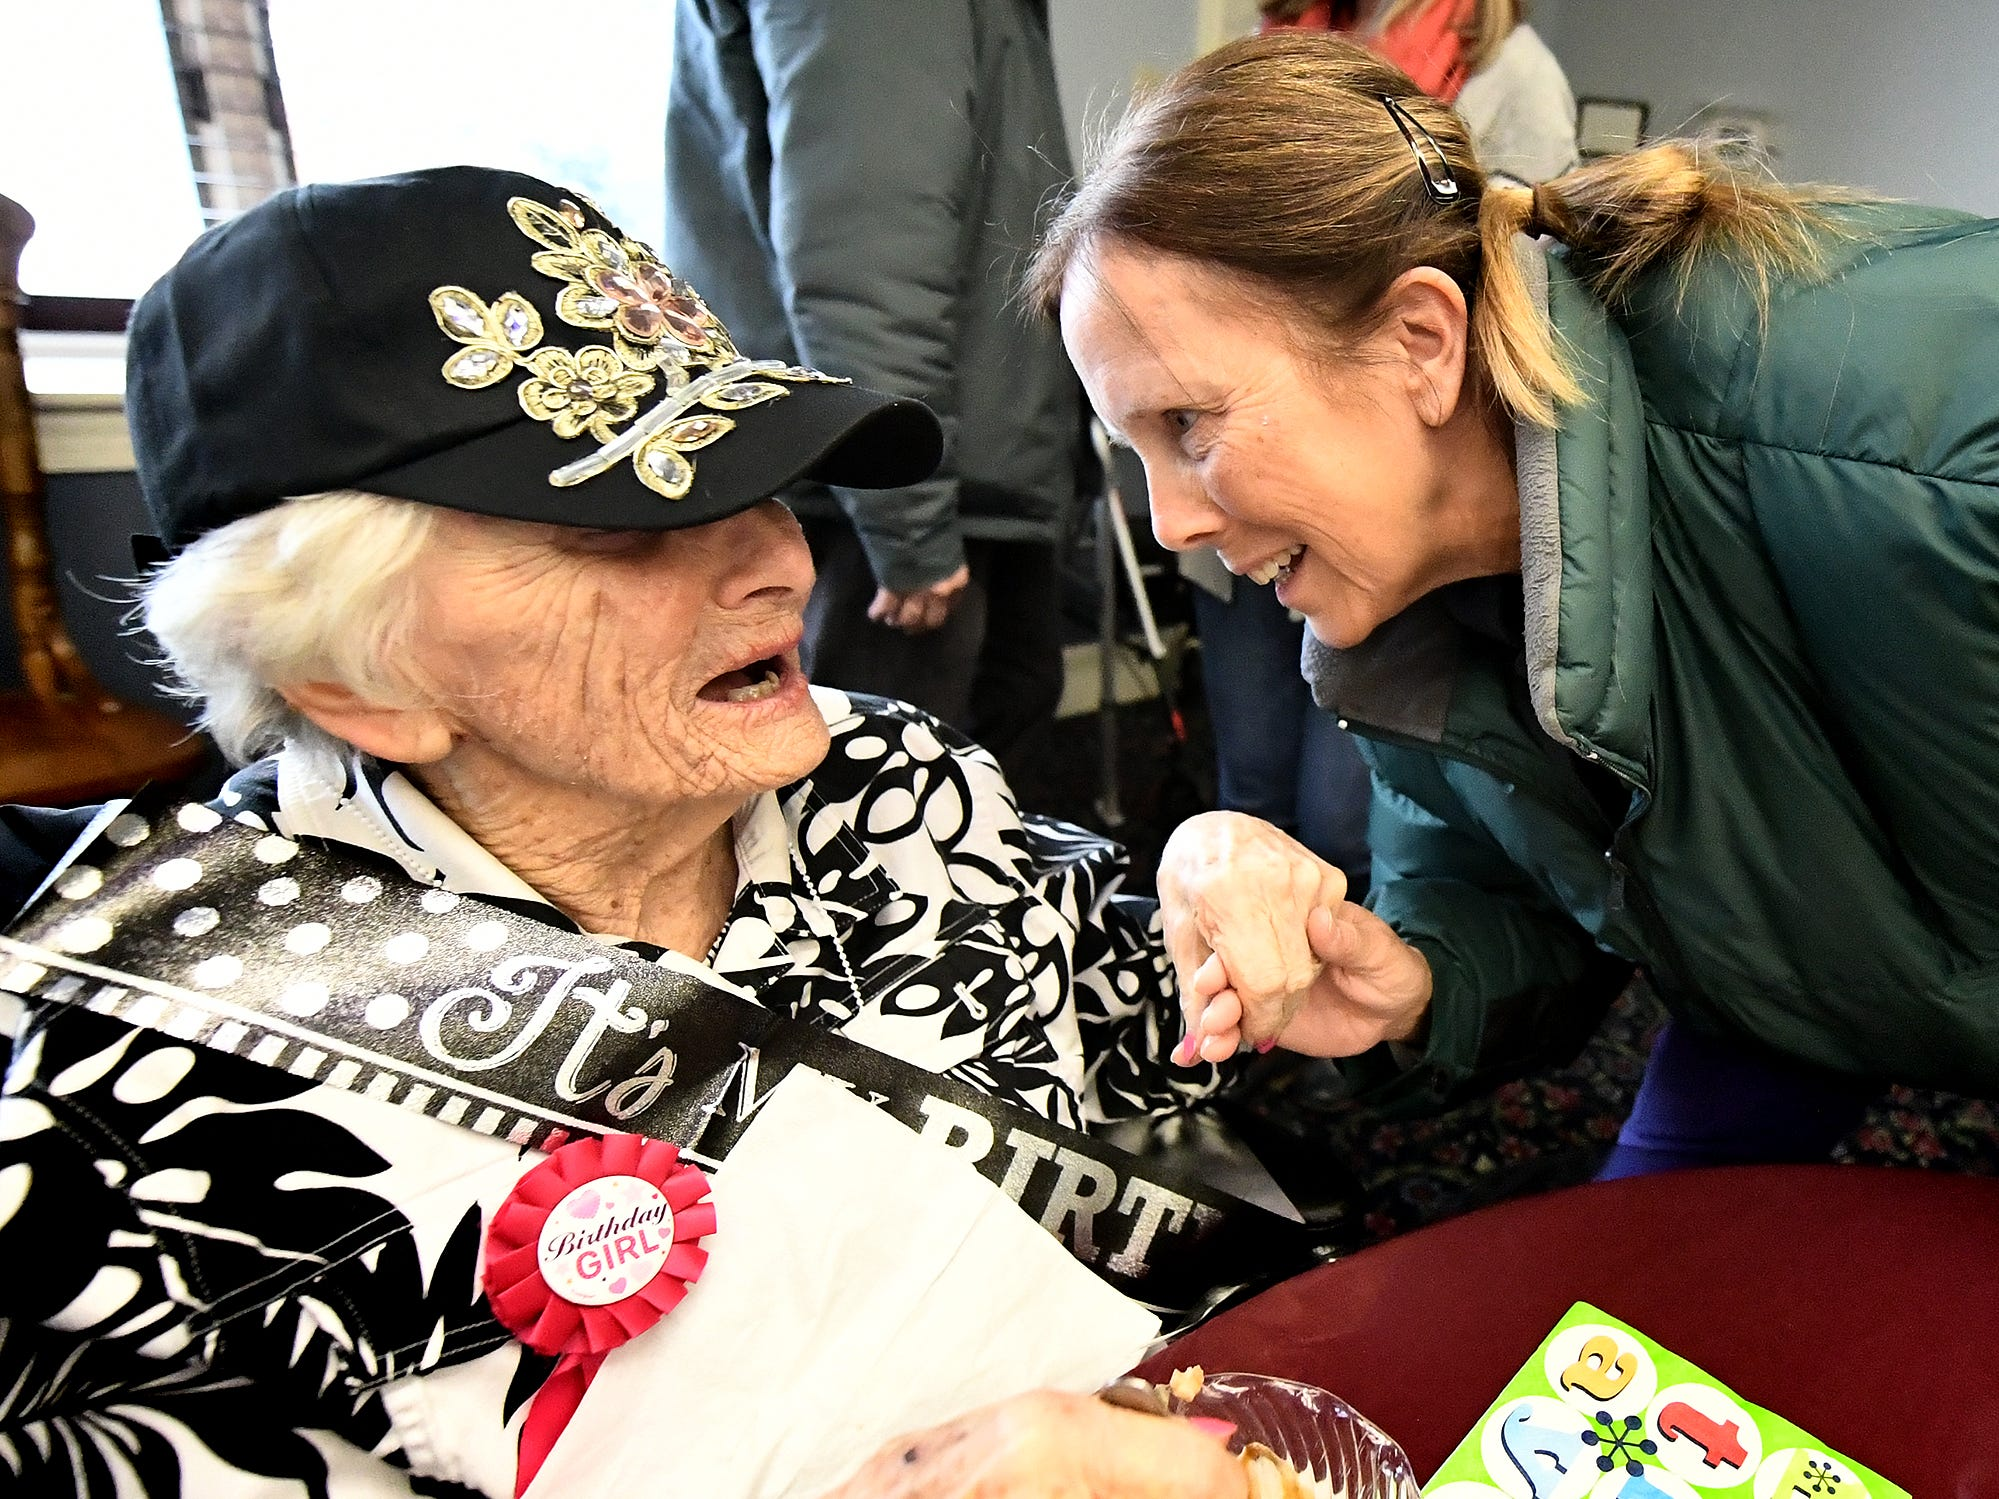 Ruth Kohler gets a birthday greeting while celebrating her 104th birthday at Senior Commons at Powder Mill where she is a resident Friday, Feb. 1, 2019. According to Commons staff, Ruth is the oldest resident to have lived there. Bill Kalina photo